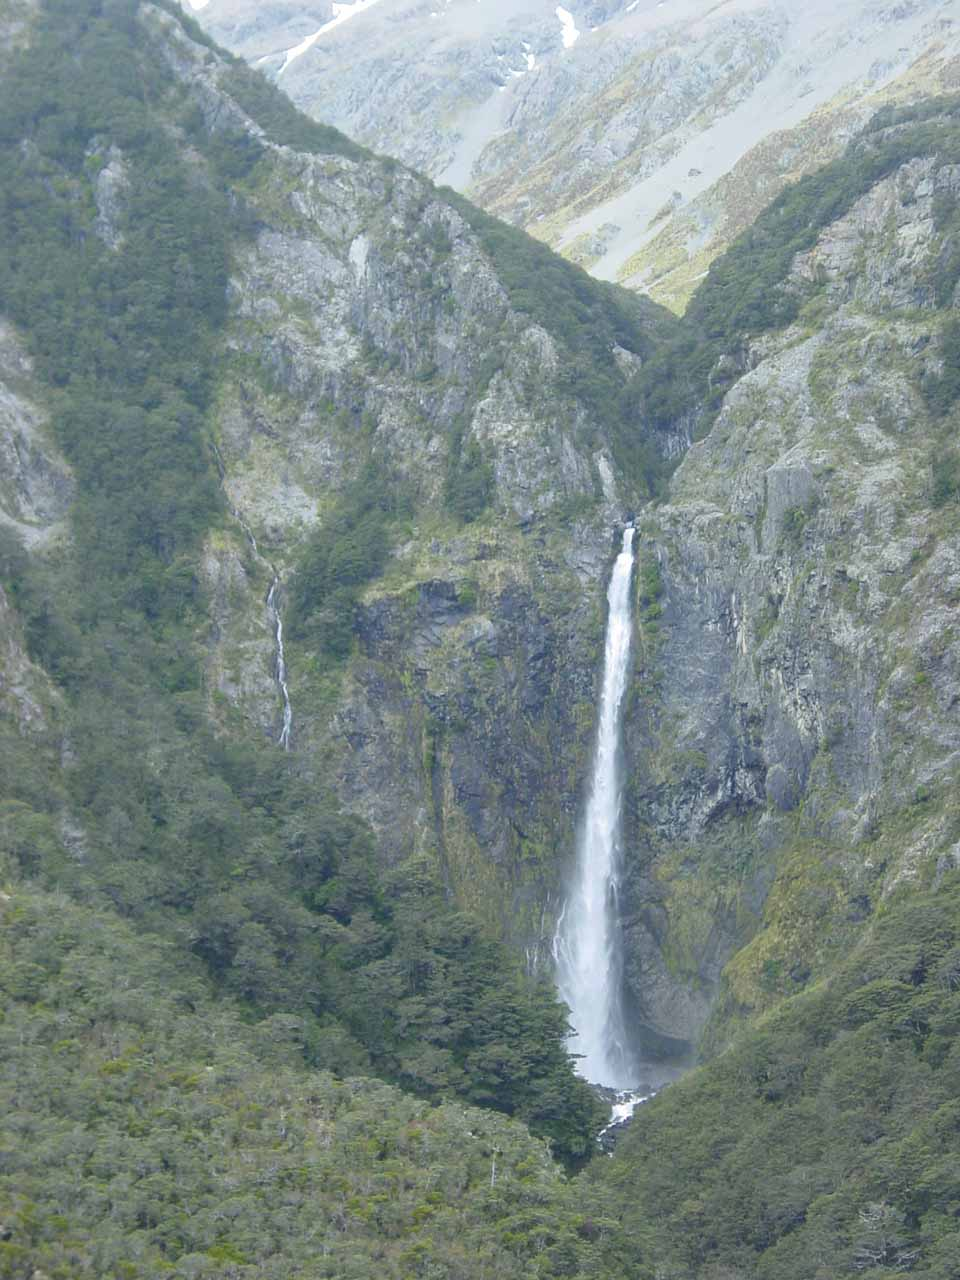 View of Devils Punchbowl Falls and some stringier companion waterfalls